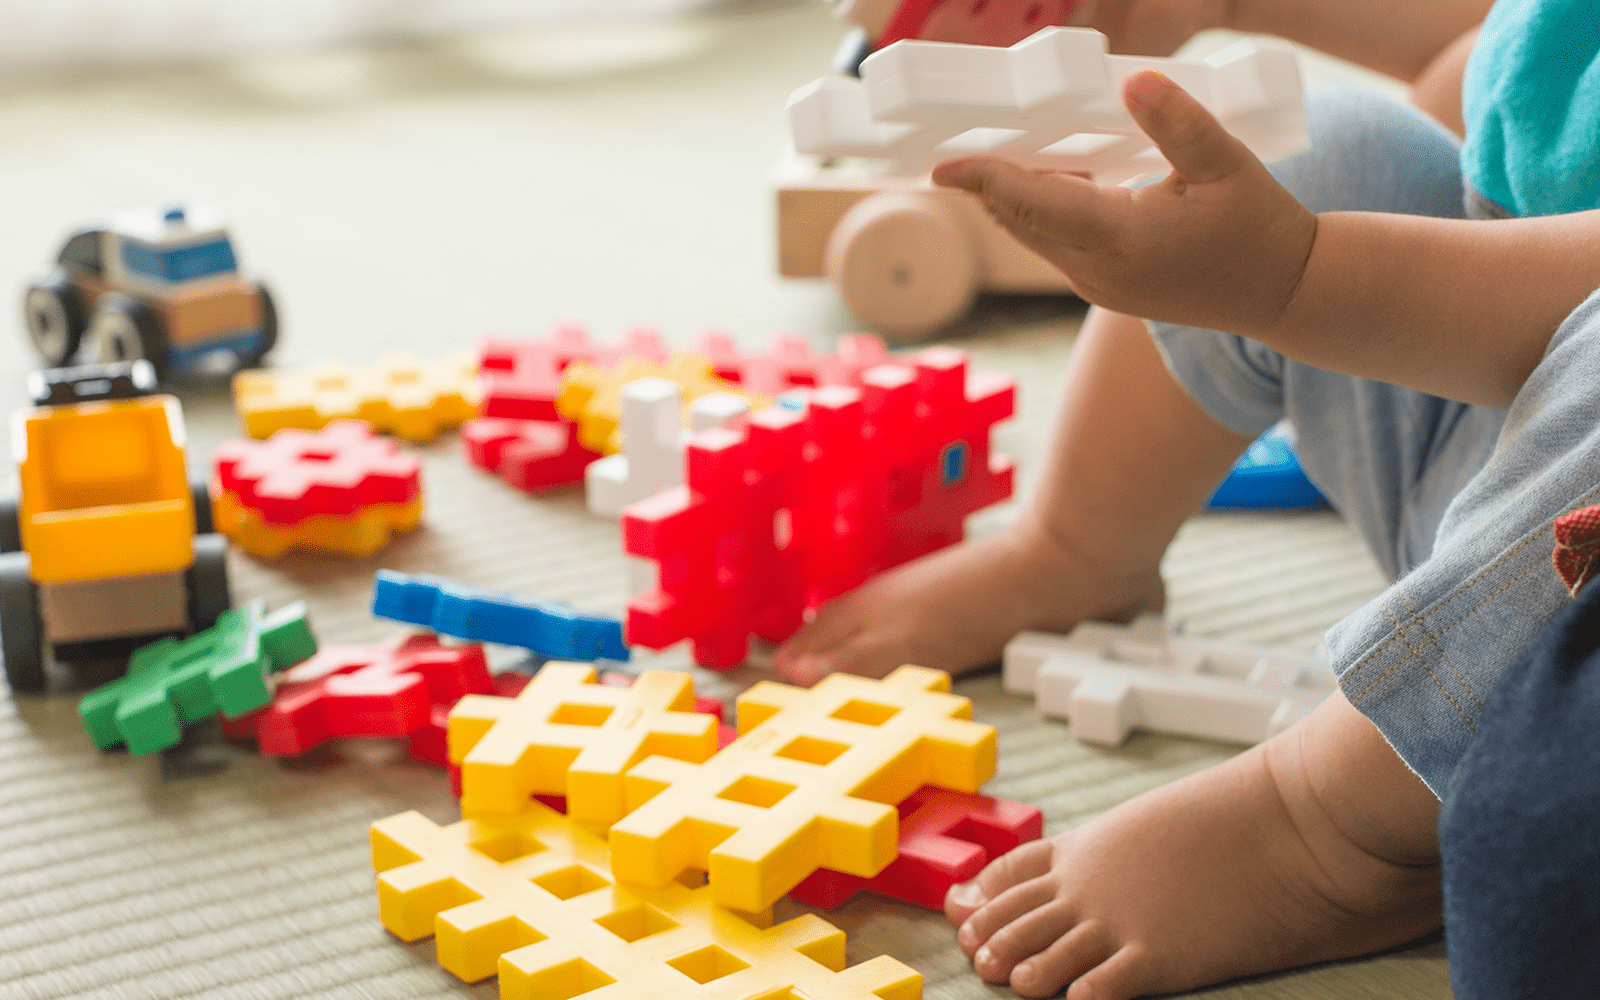 Trucks and Toddler Games Close Up